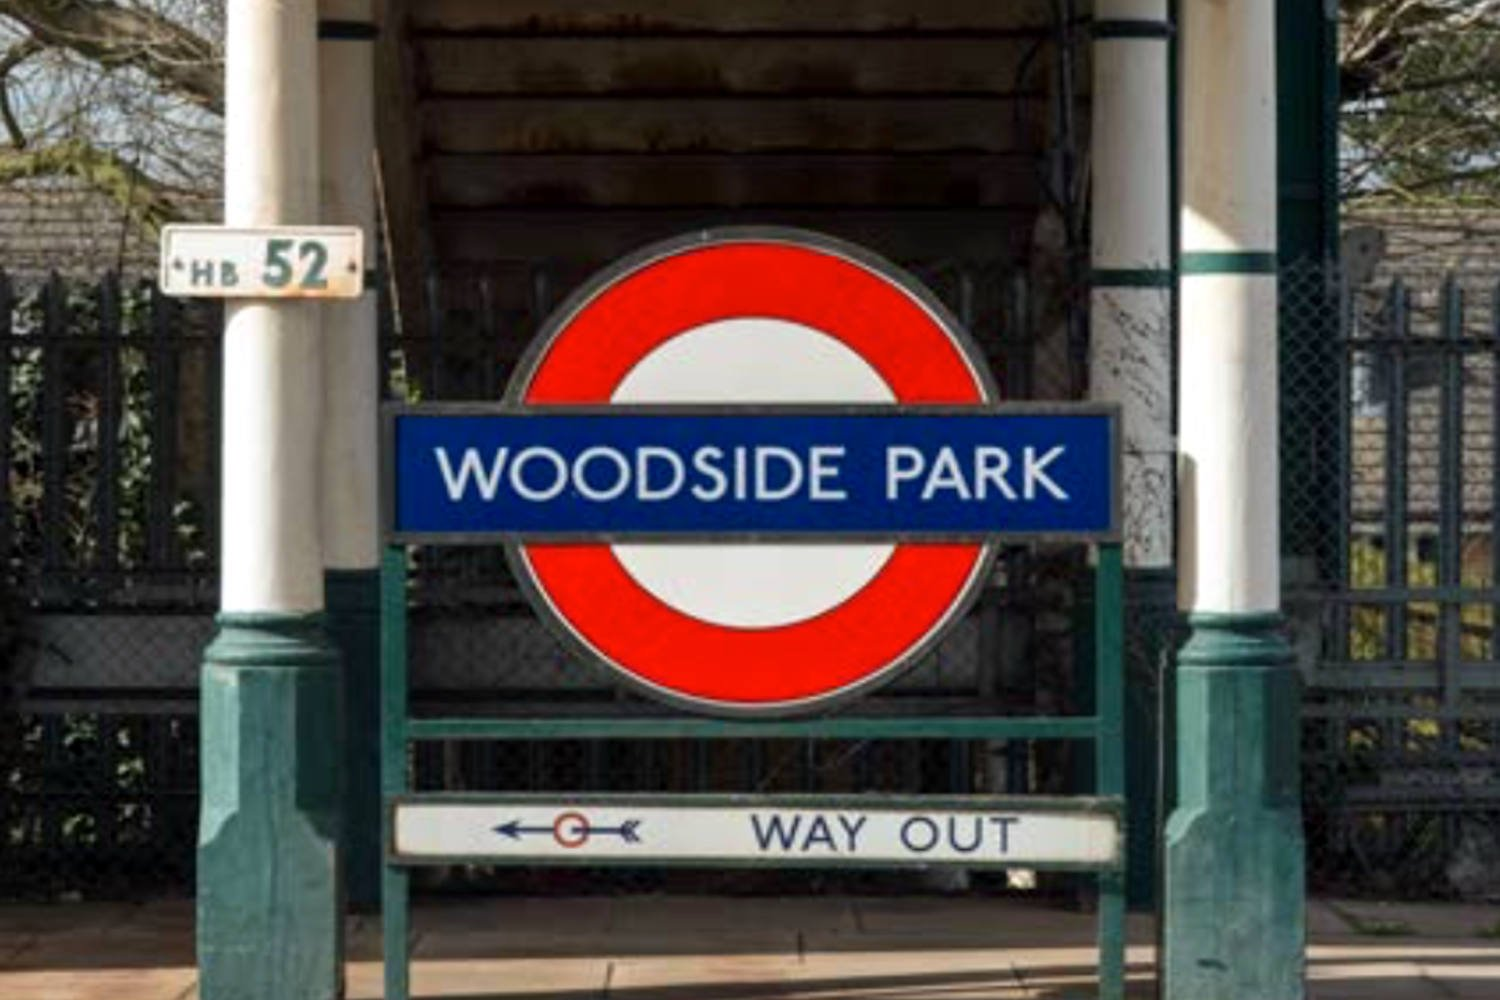 One bedroom flat in Finchley for sale